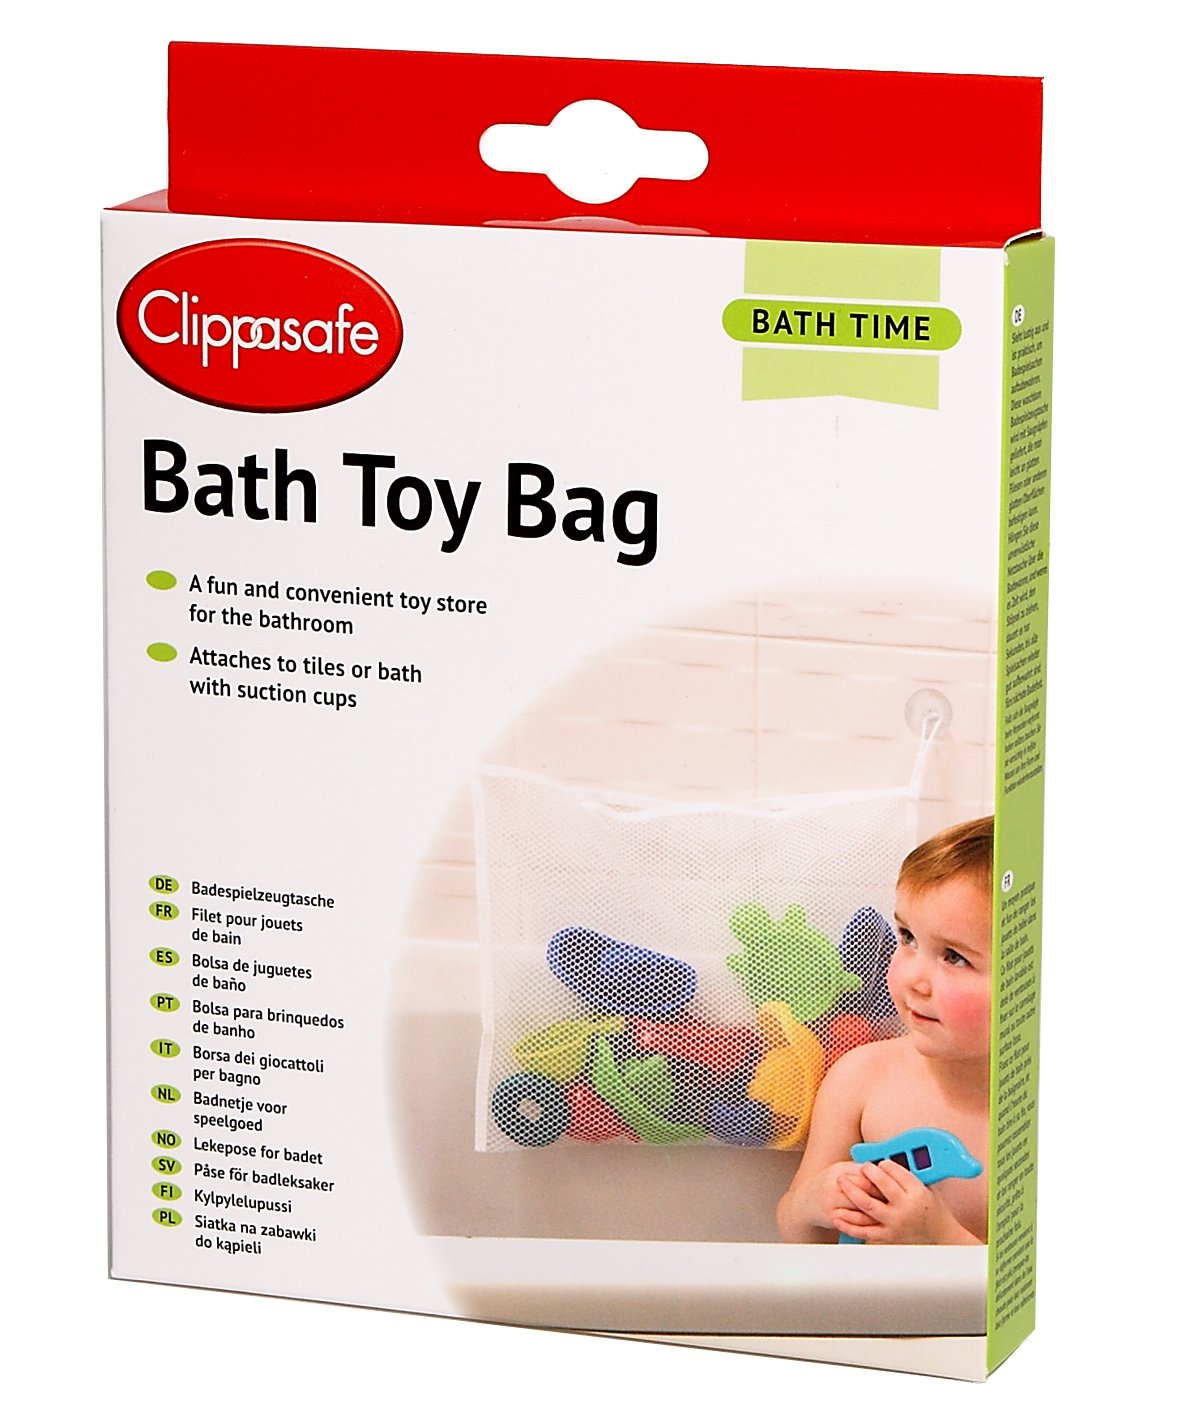 Clippasafe Bath Toy Bag - White CL350FFP